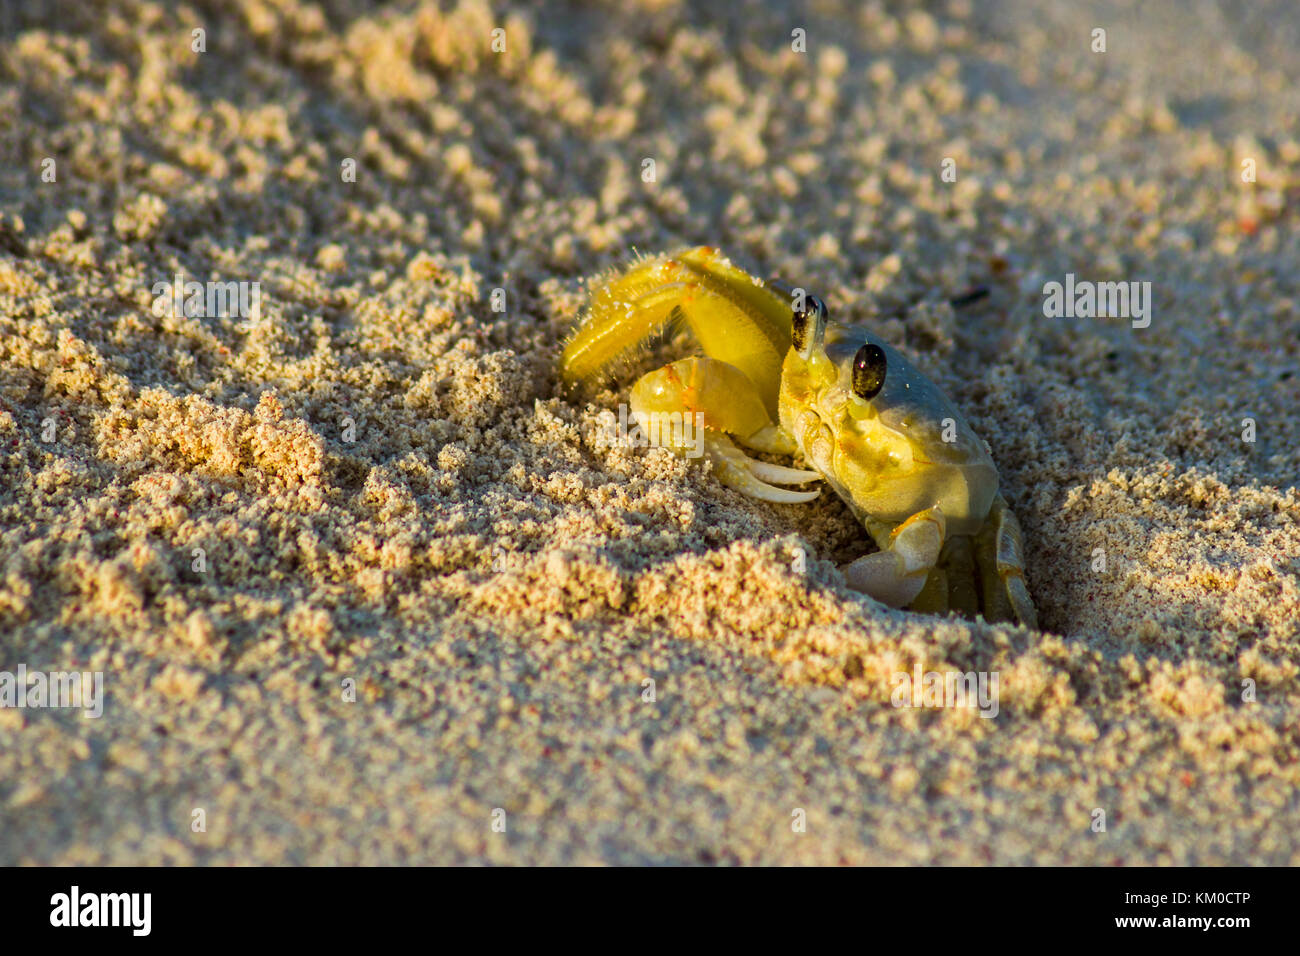 An inquisitive Ghost crab emerges from its hole in the sand to forage for food during sunrise on the beach of Guardalavaca - Stock Image